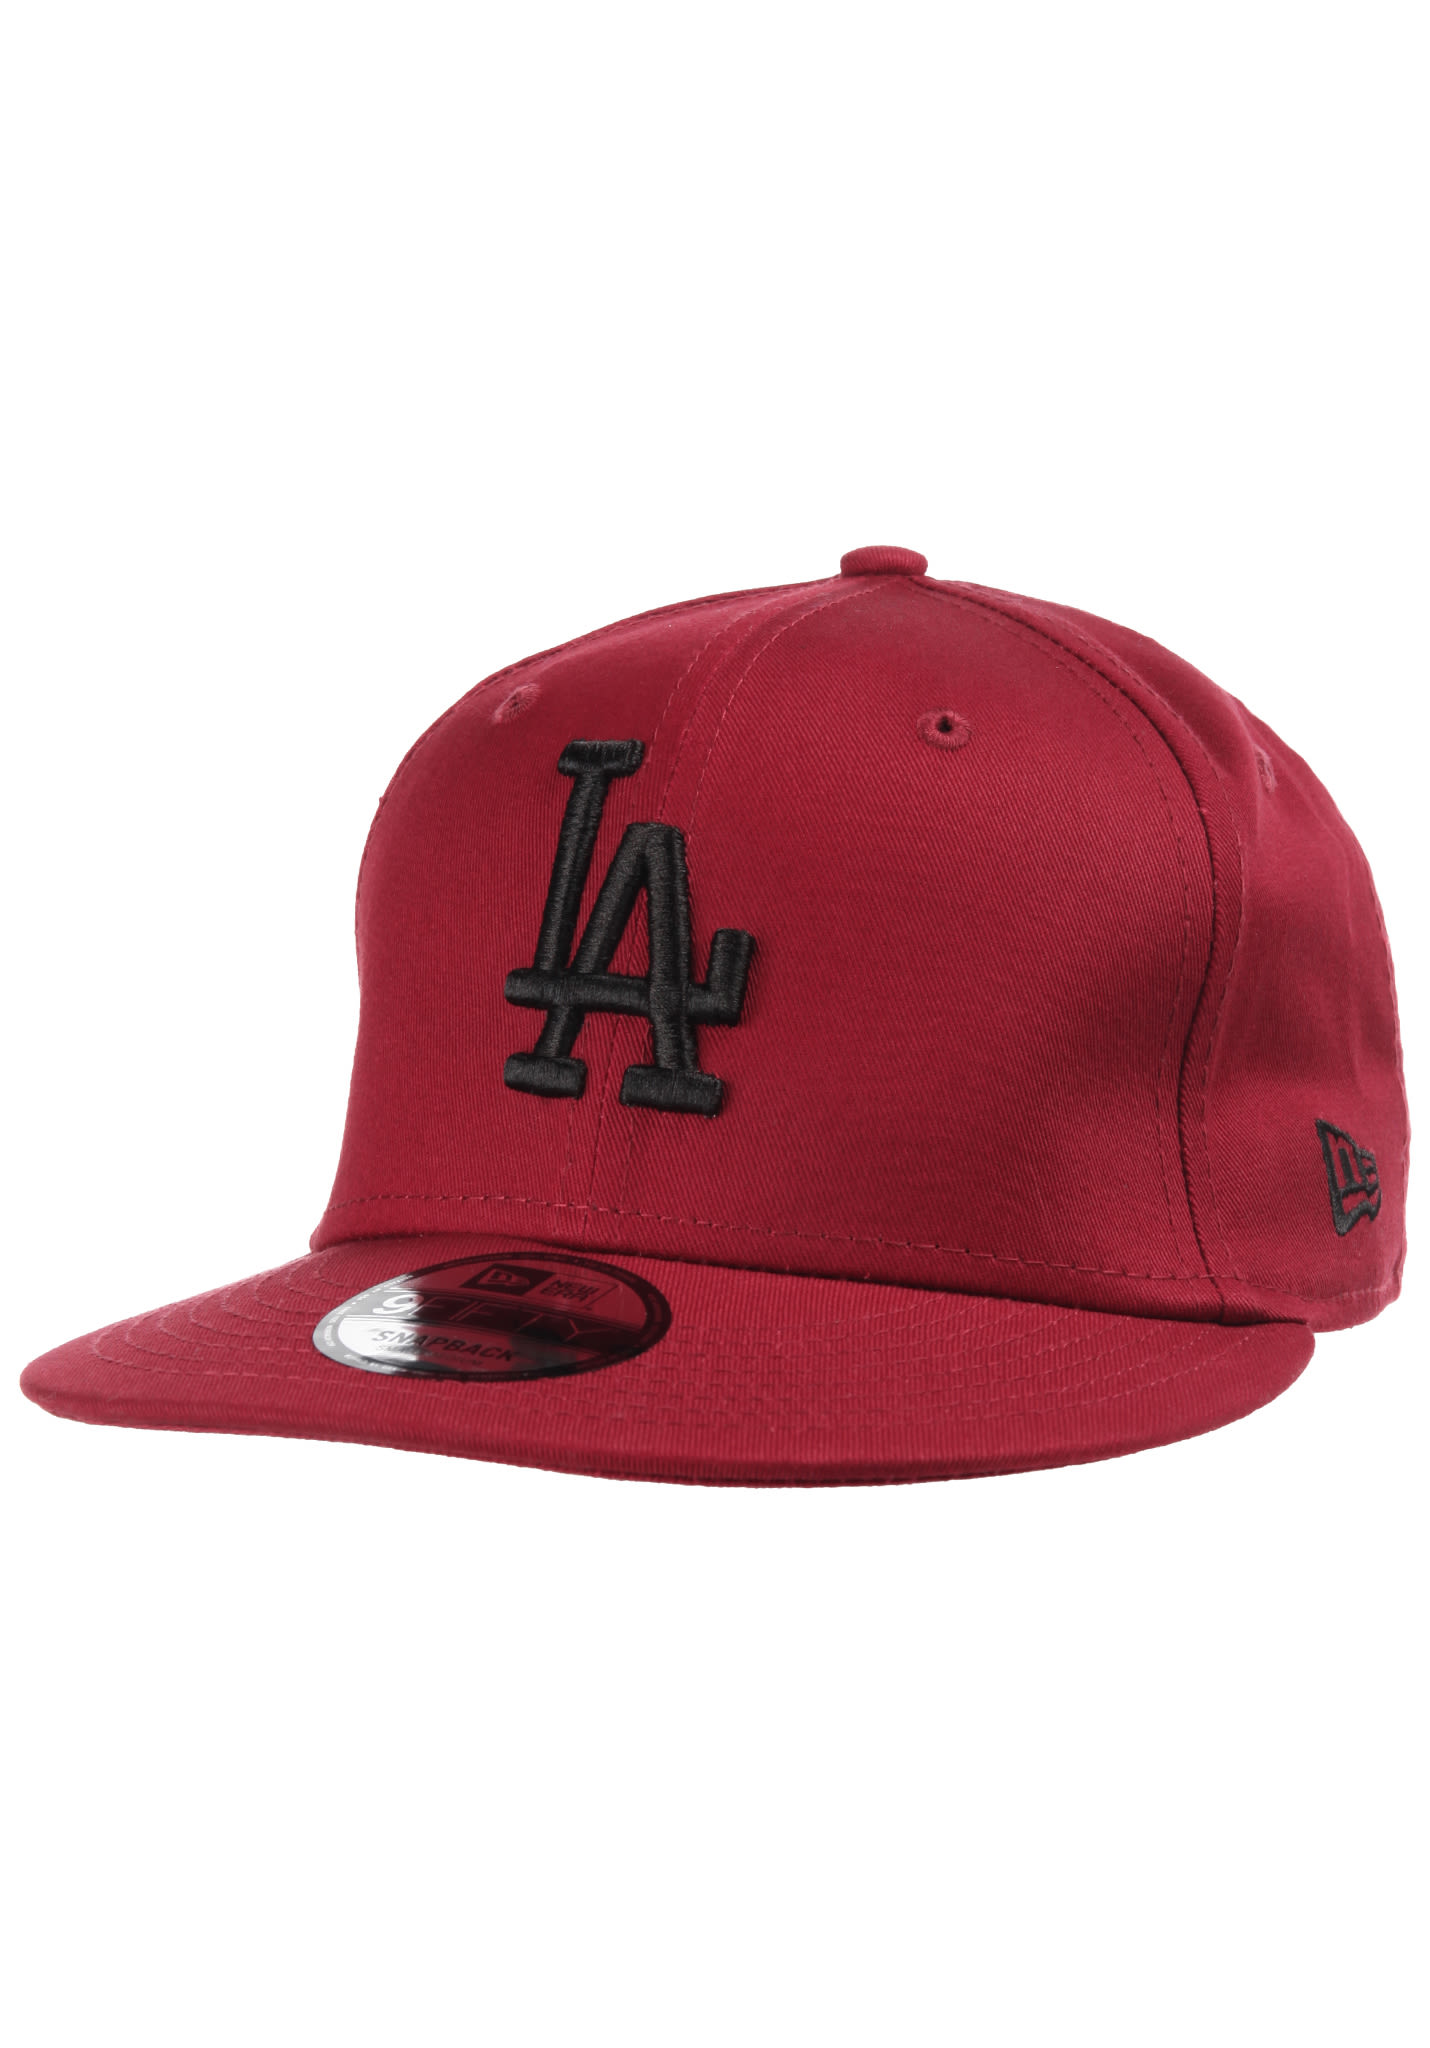 d7f7f841f5dbf NEW Era 9Fifty Los Angeles Dodgers - Casquette snapback - Rouge - Planet  Sports